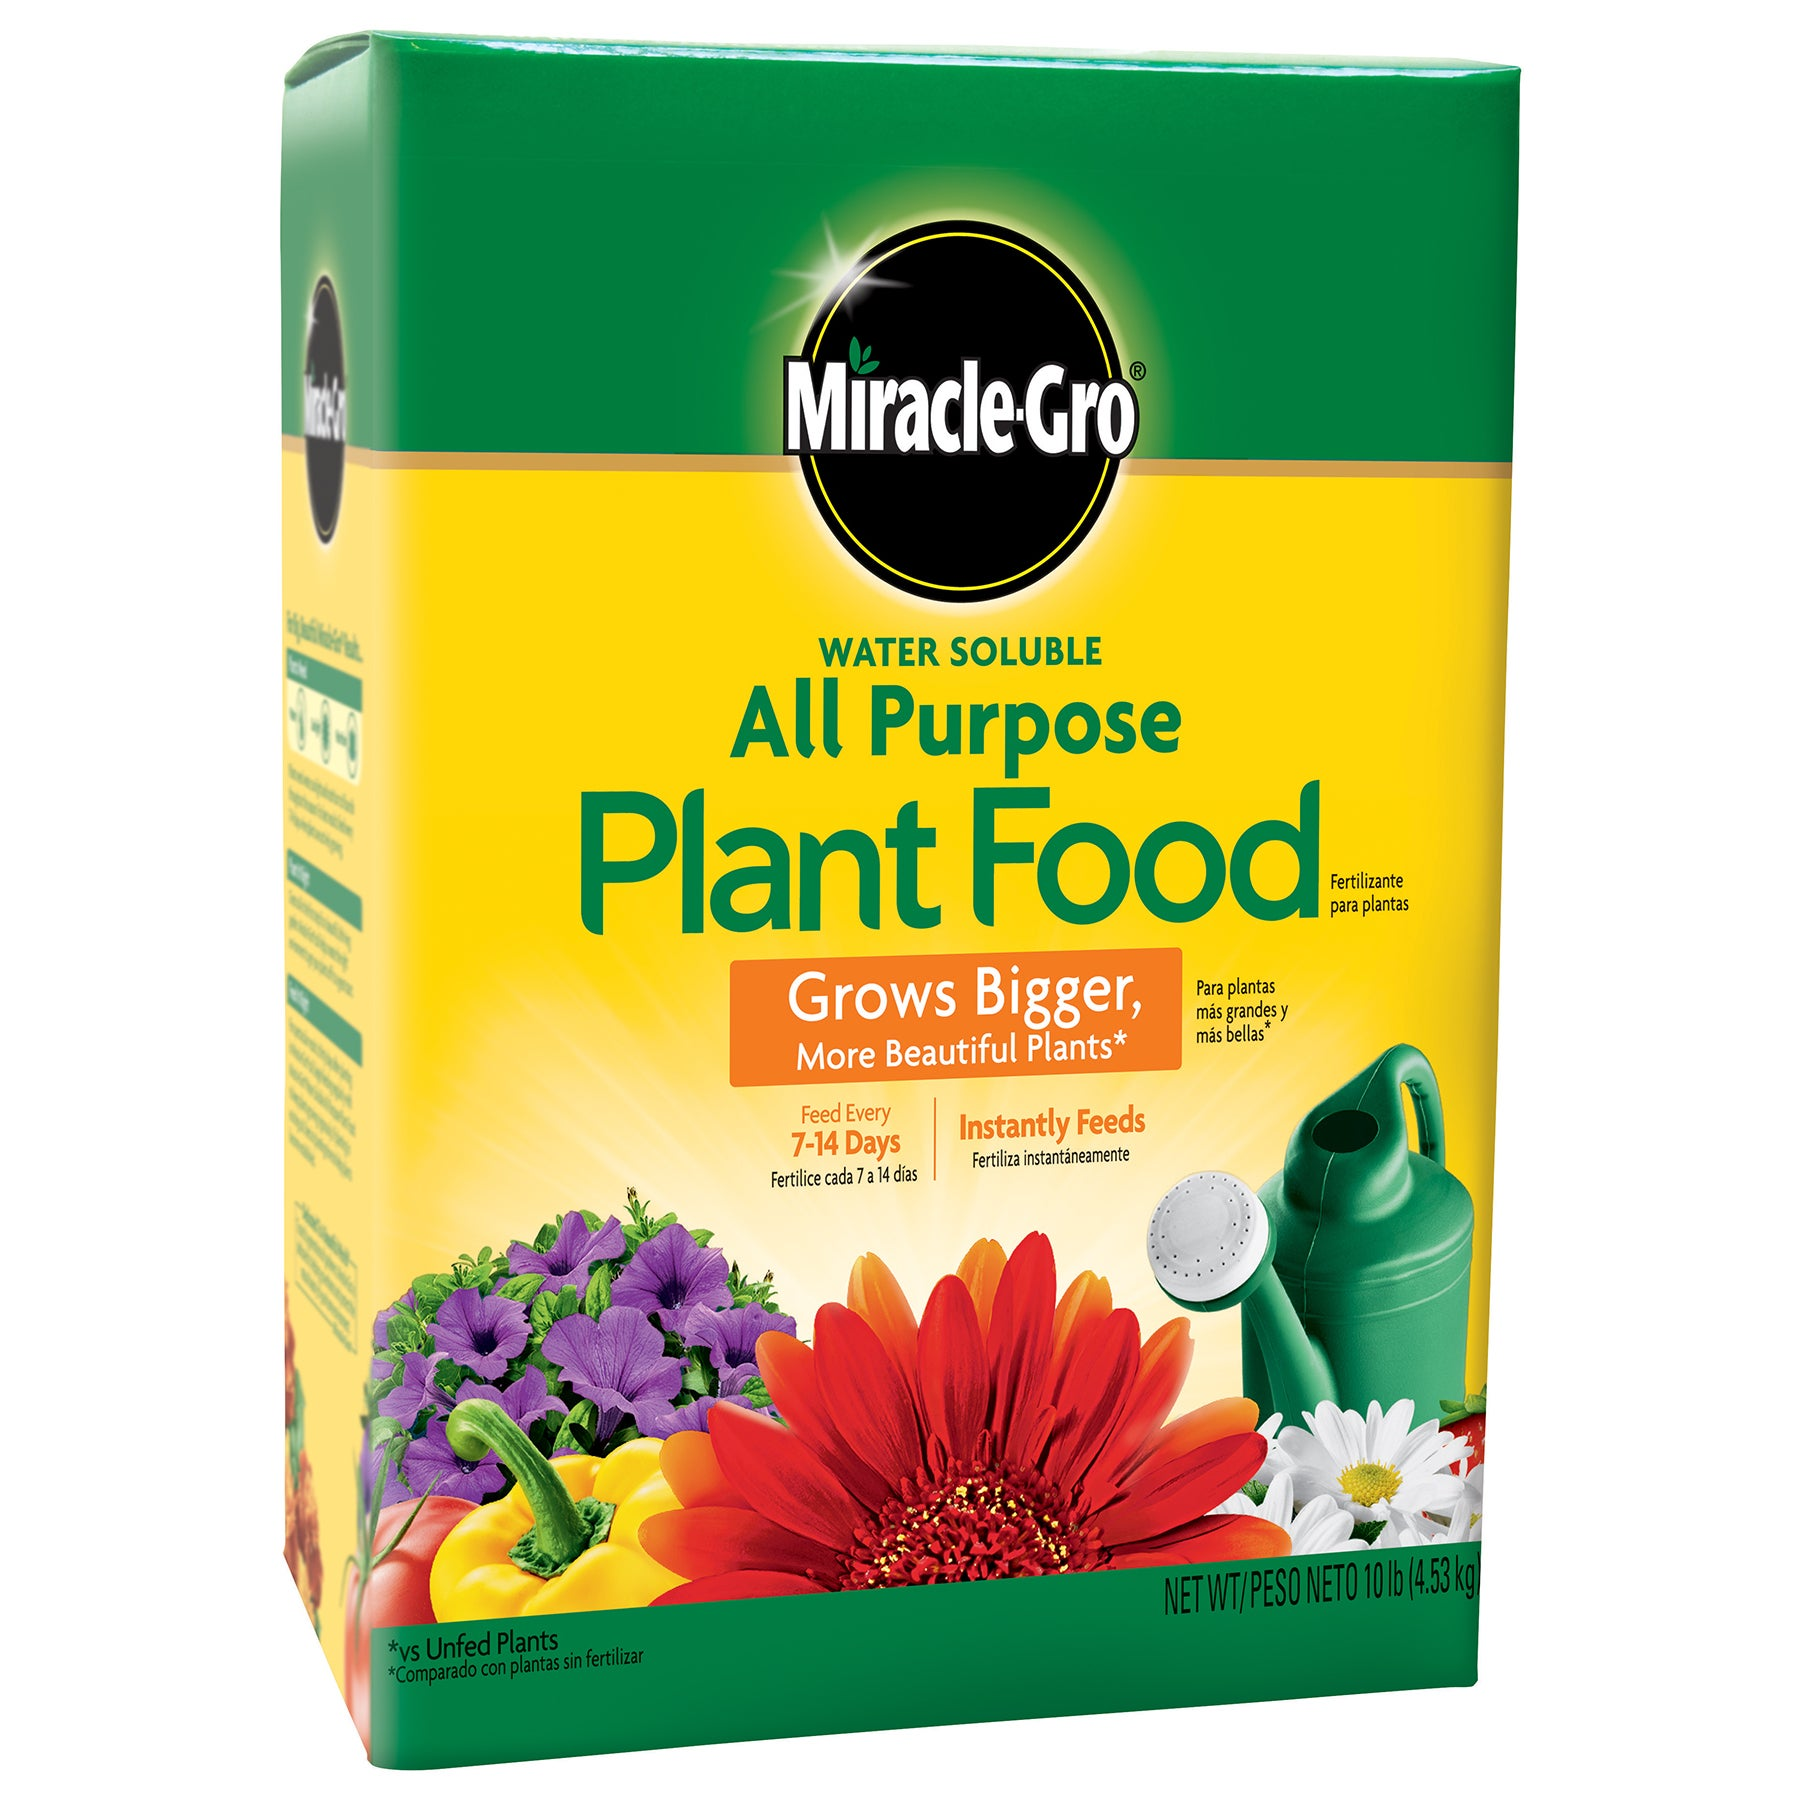 Miracle Gro 1001193 10-pound Water Soluble All Purpose Pl...